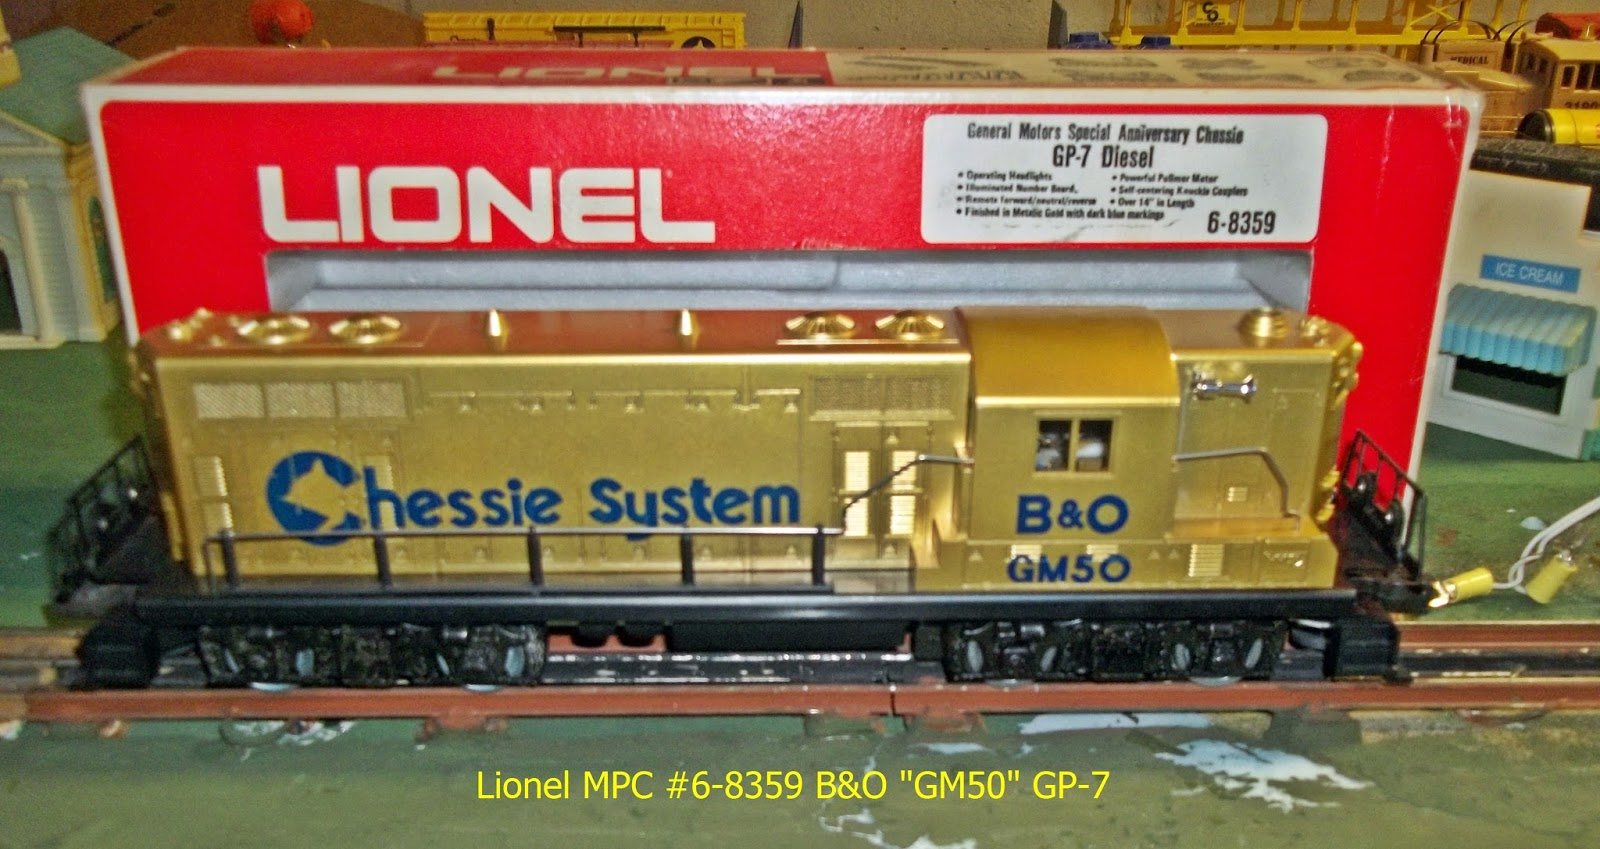 Lionel General Train Motor Wiring Diagram Track Image Not Found Or Type Unknown